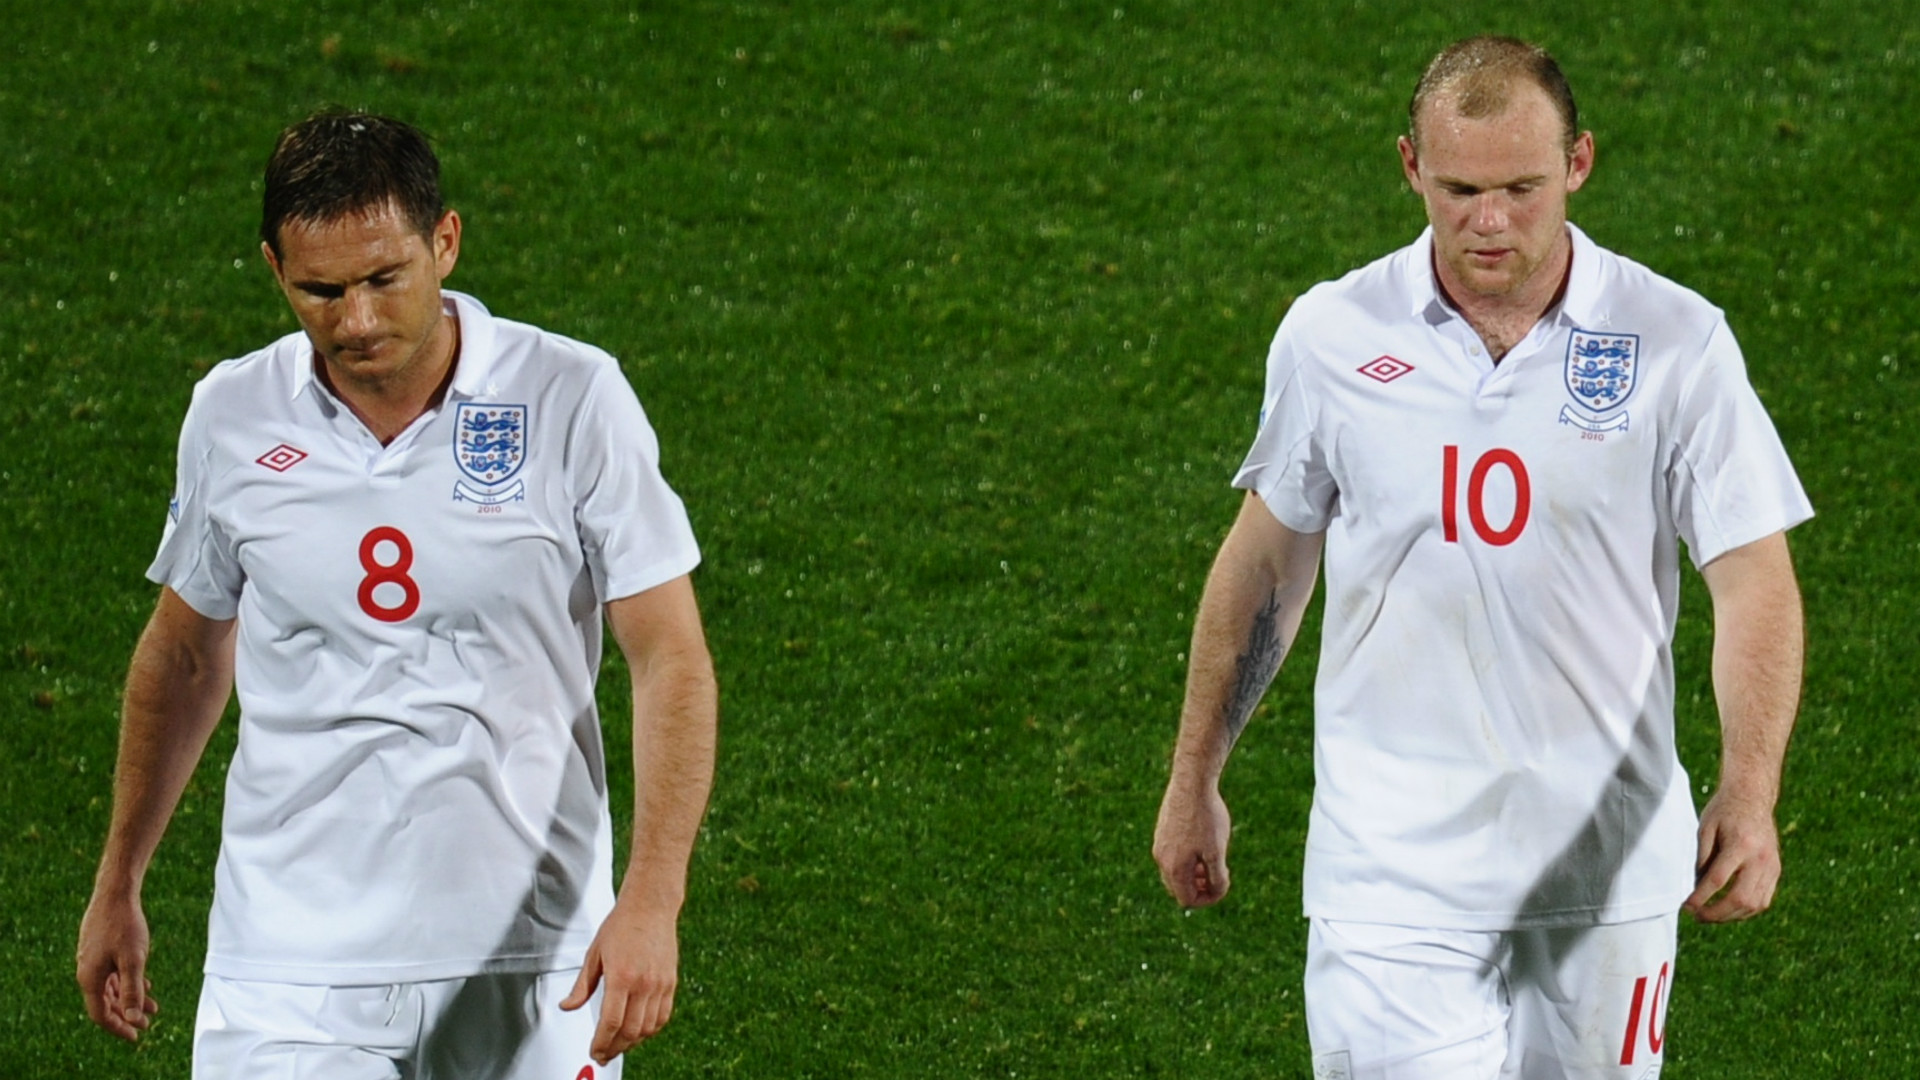 England would have 'won everything' if Guardiola was manager, says Rooney